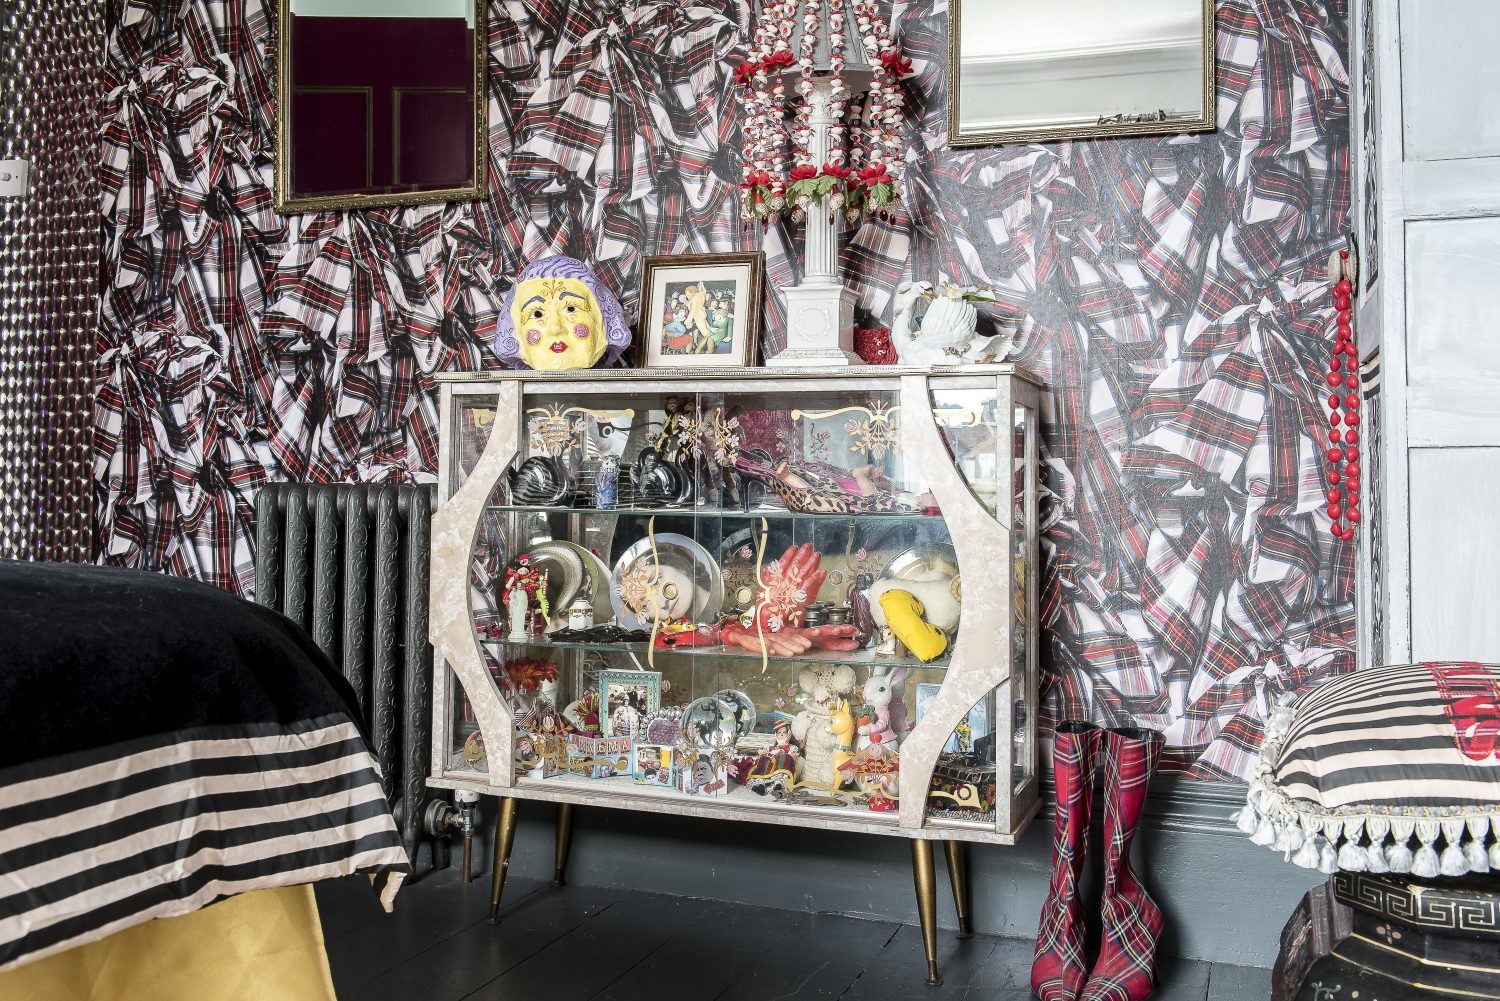 The 1950s cabinet contains mementoes from Annemarie's life. The tartan wallpaper is by Vivienne Westwood